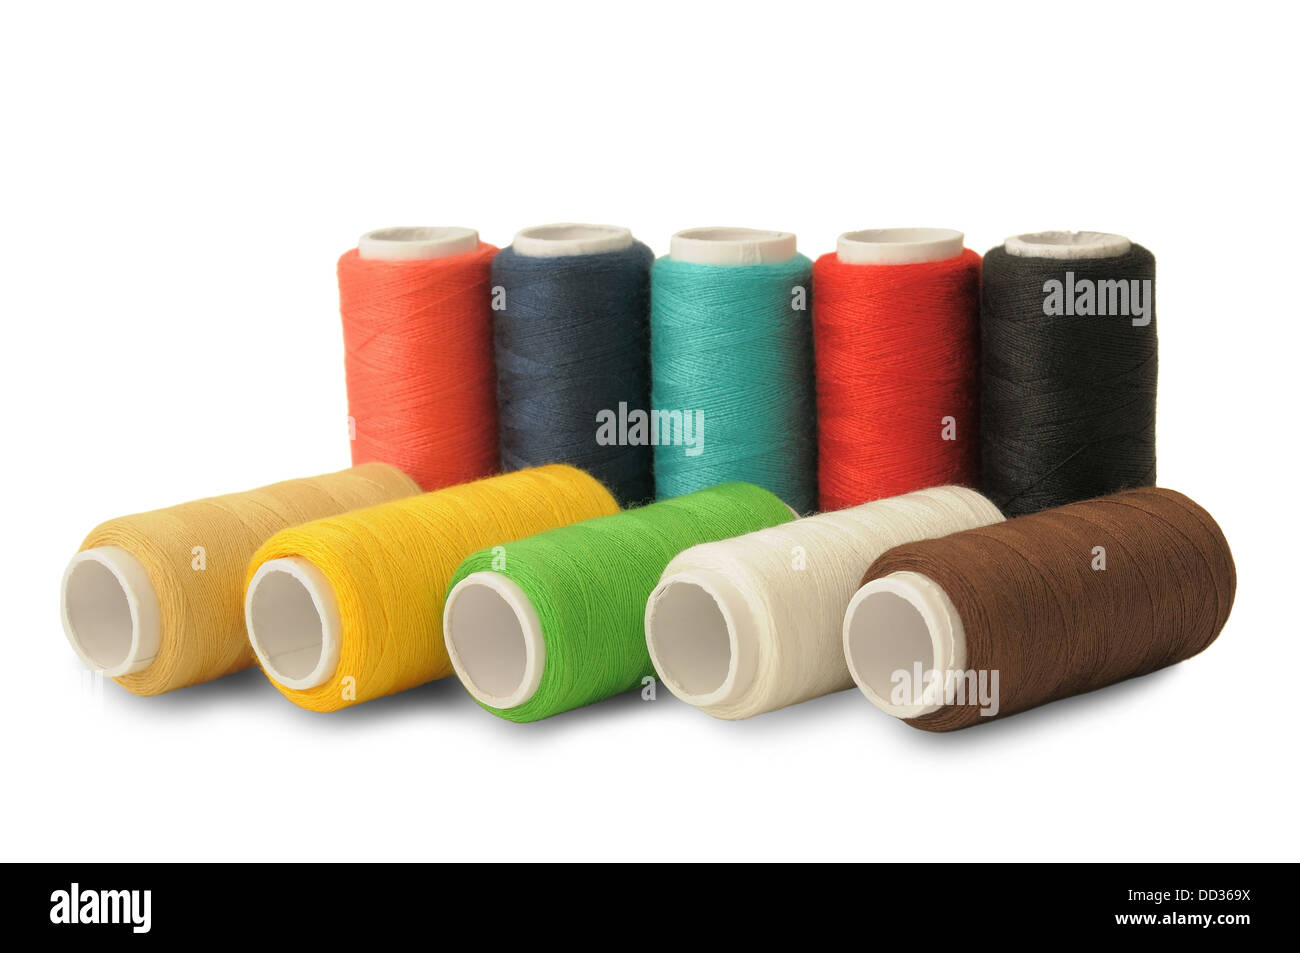 Spools of threads of different colors on white - Stock Image